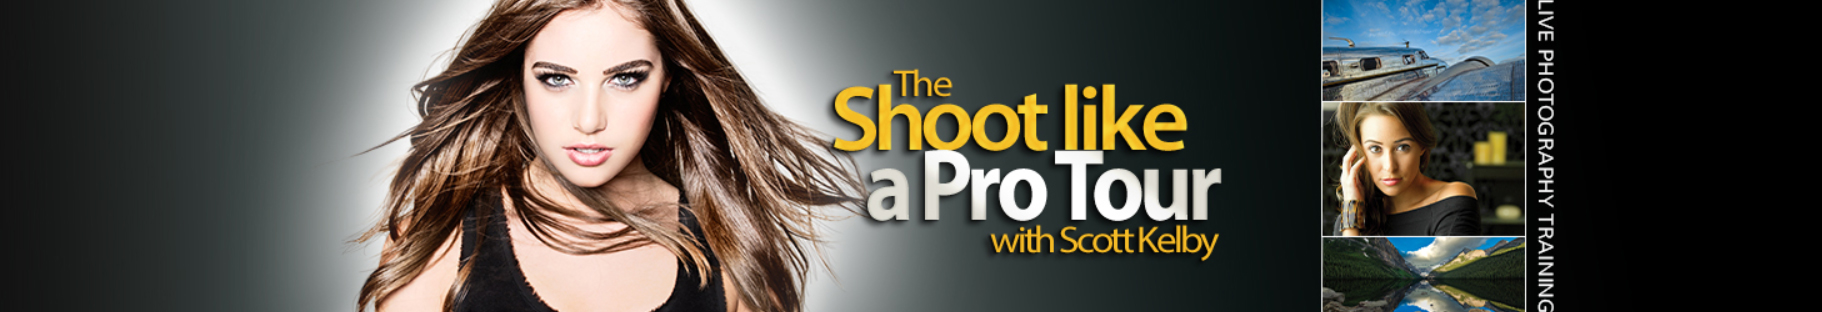 shoot_like_a_pro_scott_kelby